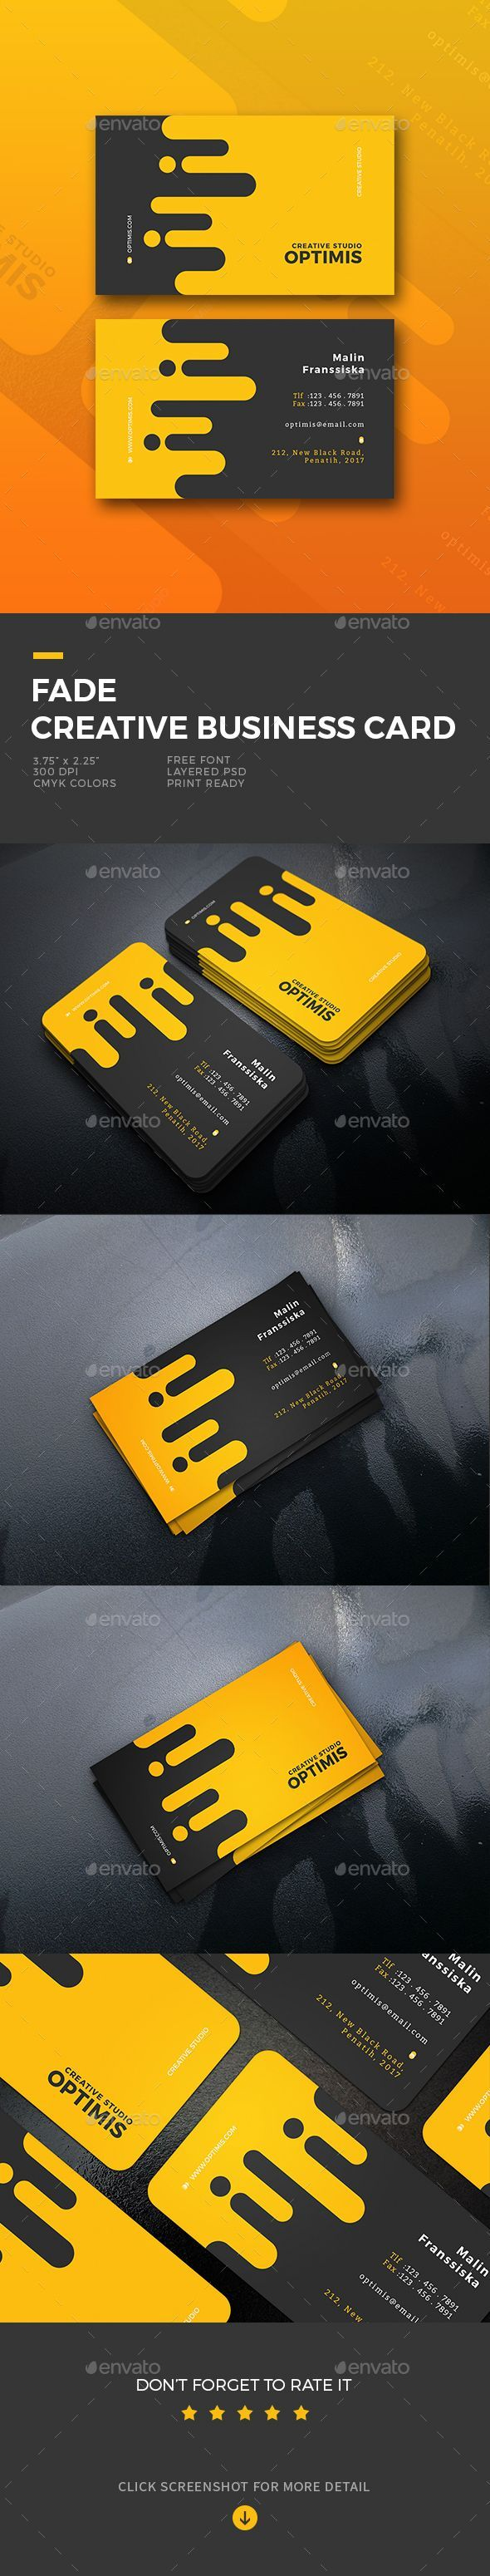 Fade creative business card template psd business card pinterest fade creative business card template psd reheart Images